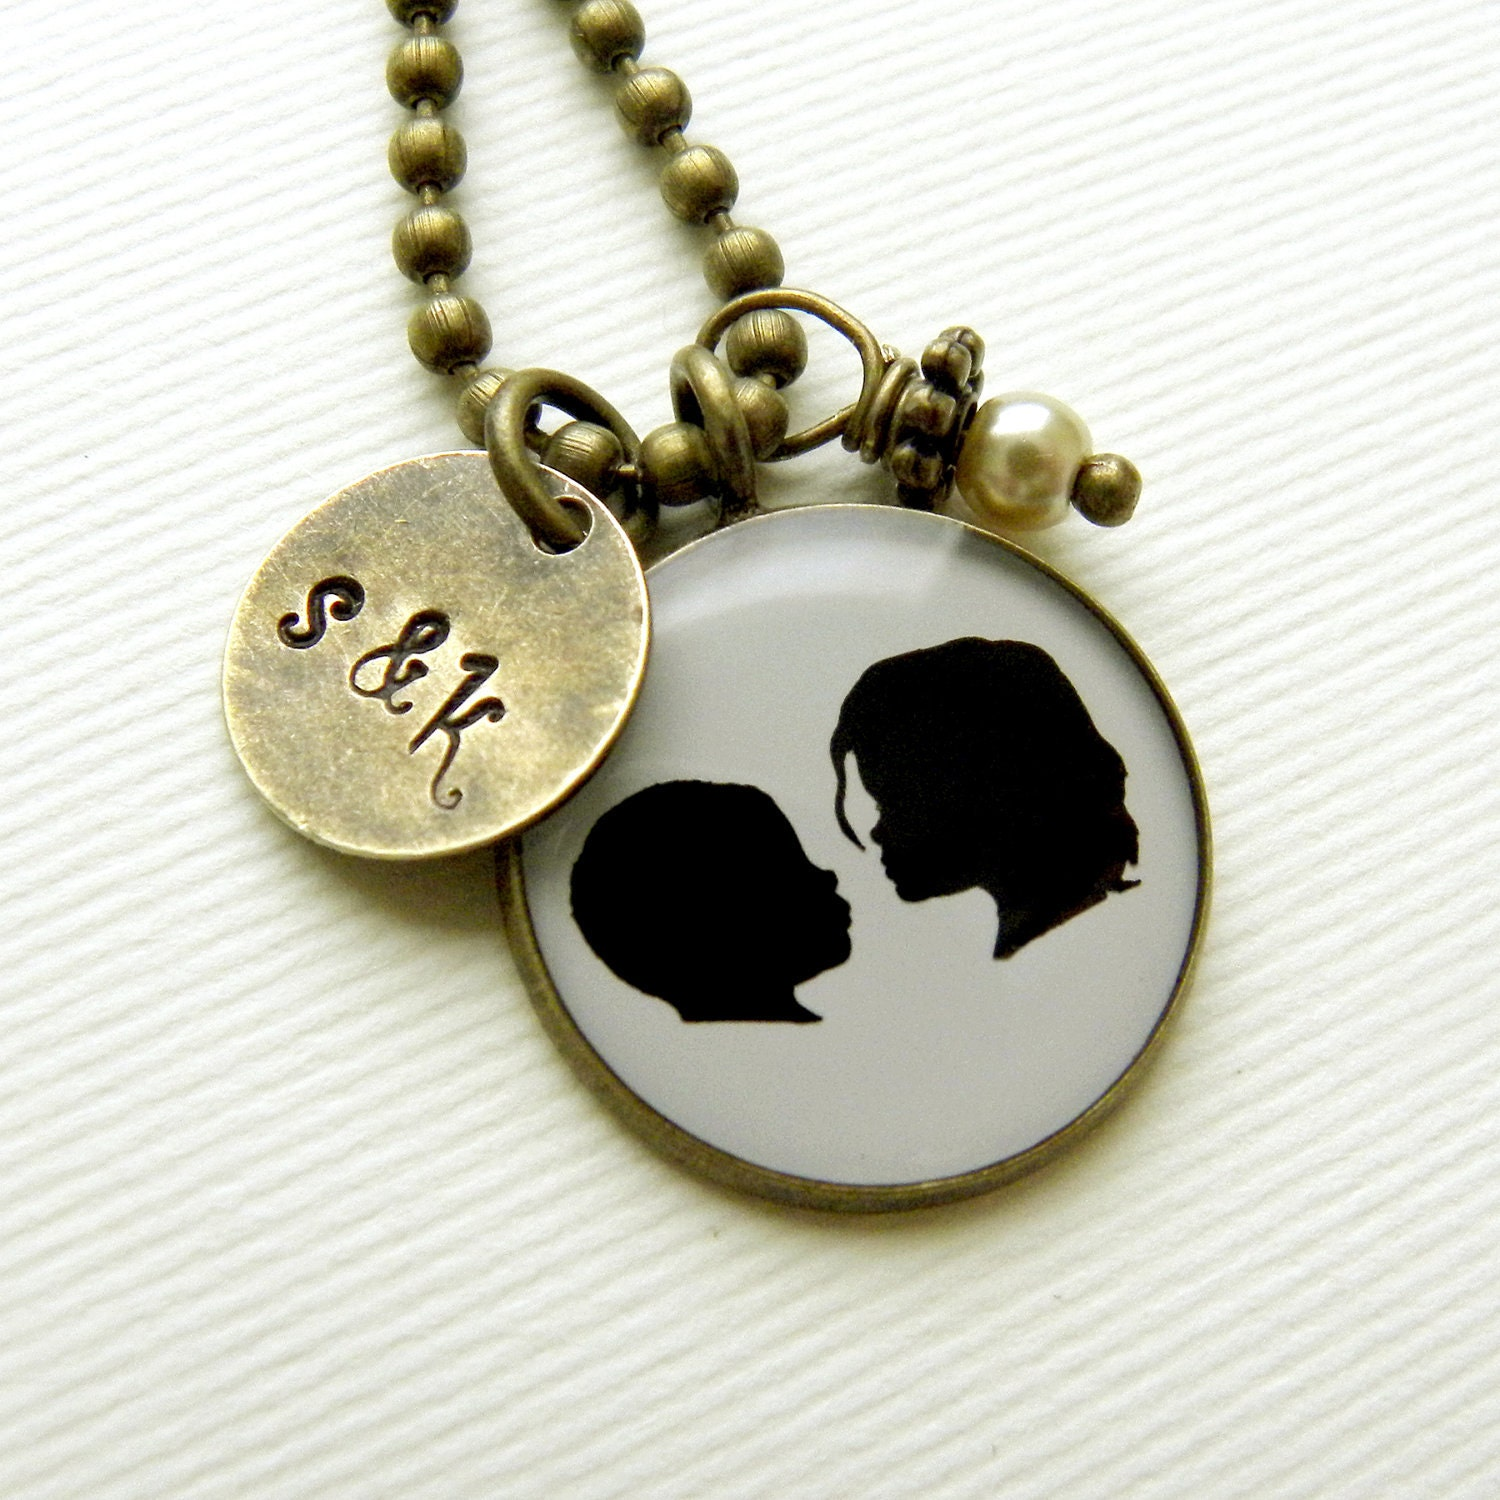 Silhouette Necklace with 2 custom silhouettes in Brass with Stamped Initial tag & Pearl Dangle